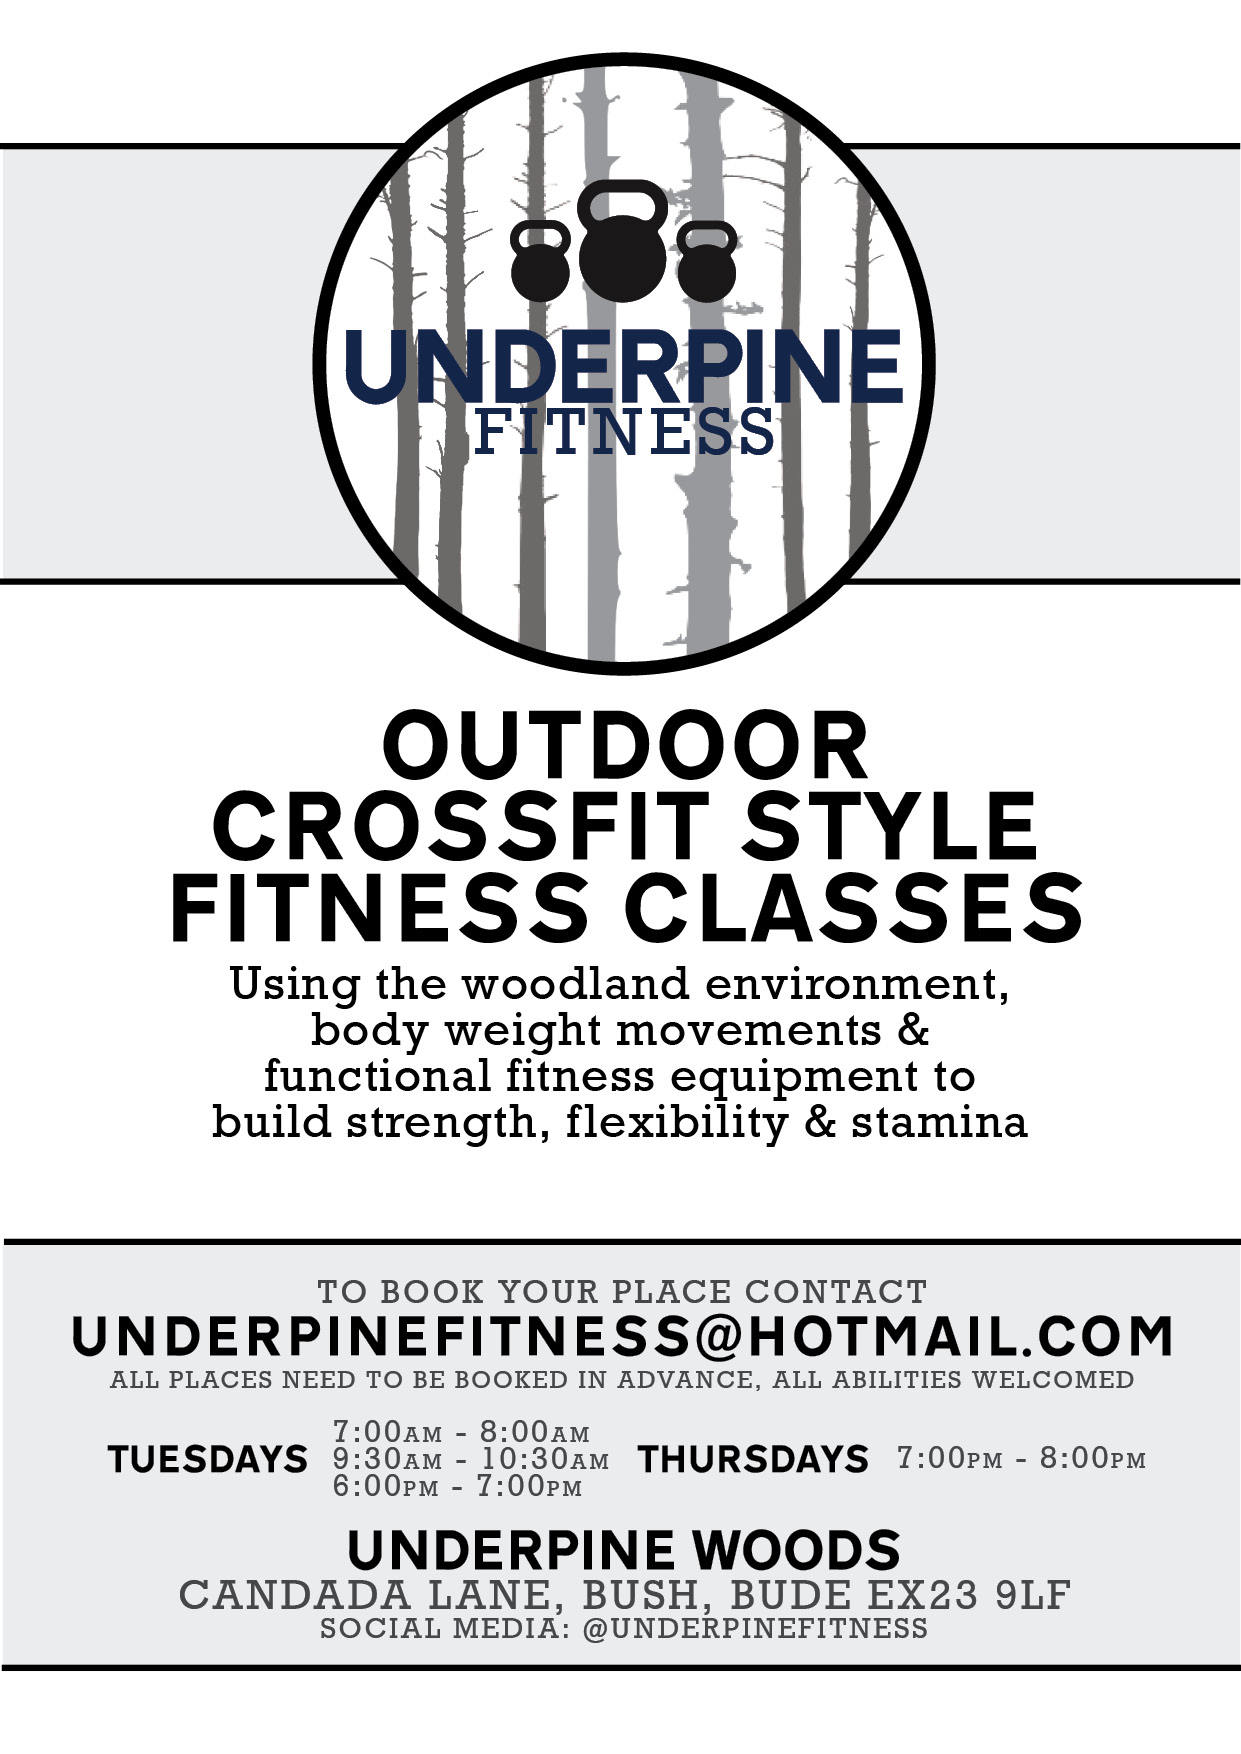 Underpine Fitness Crossfit style classses cornwall